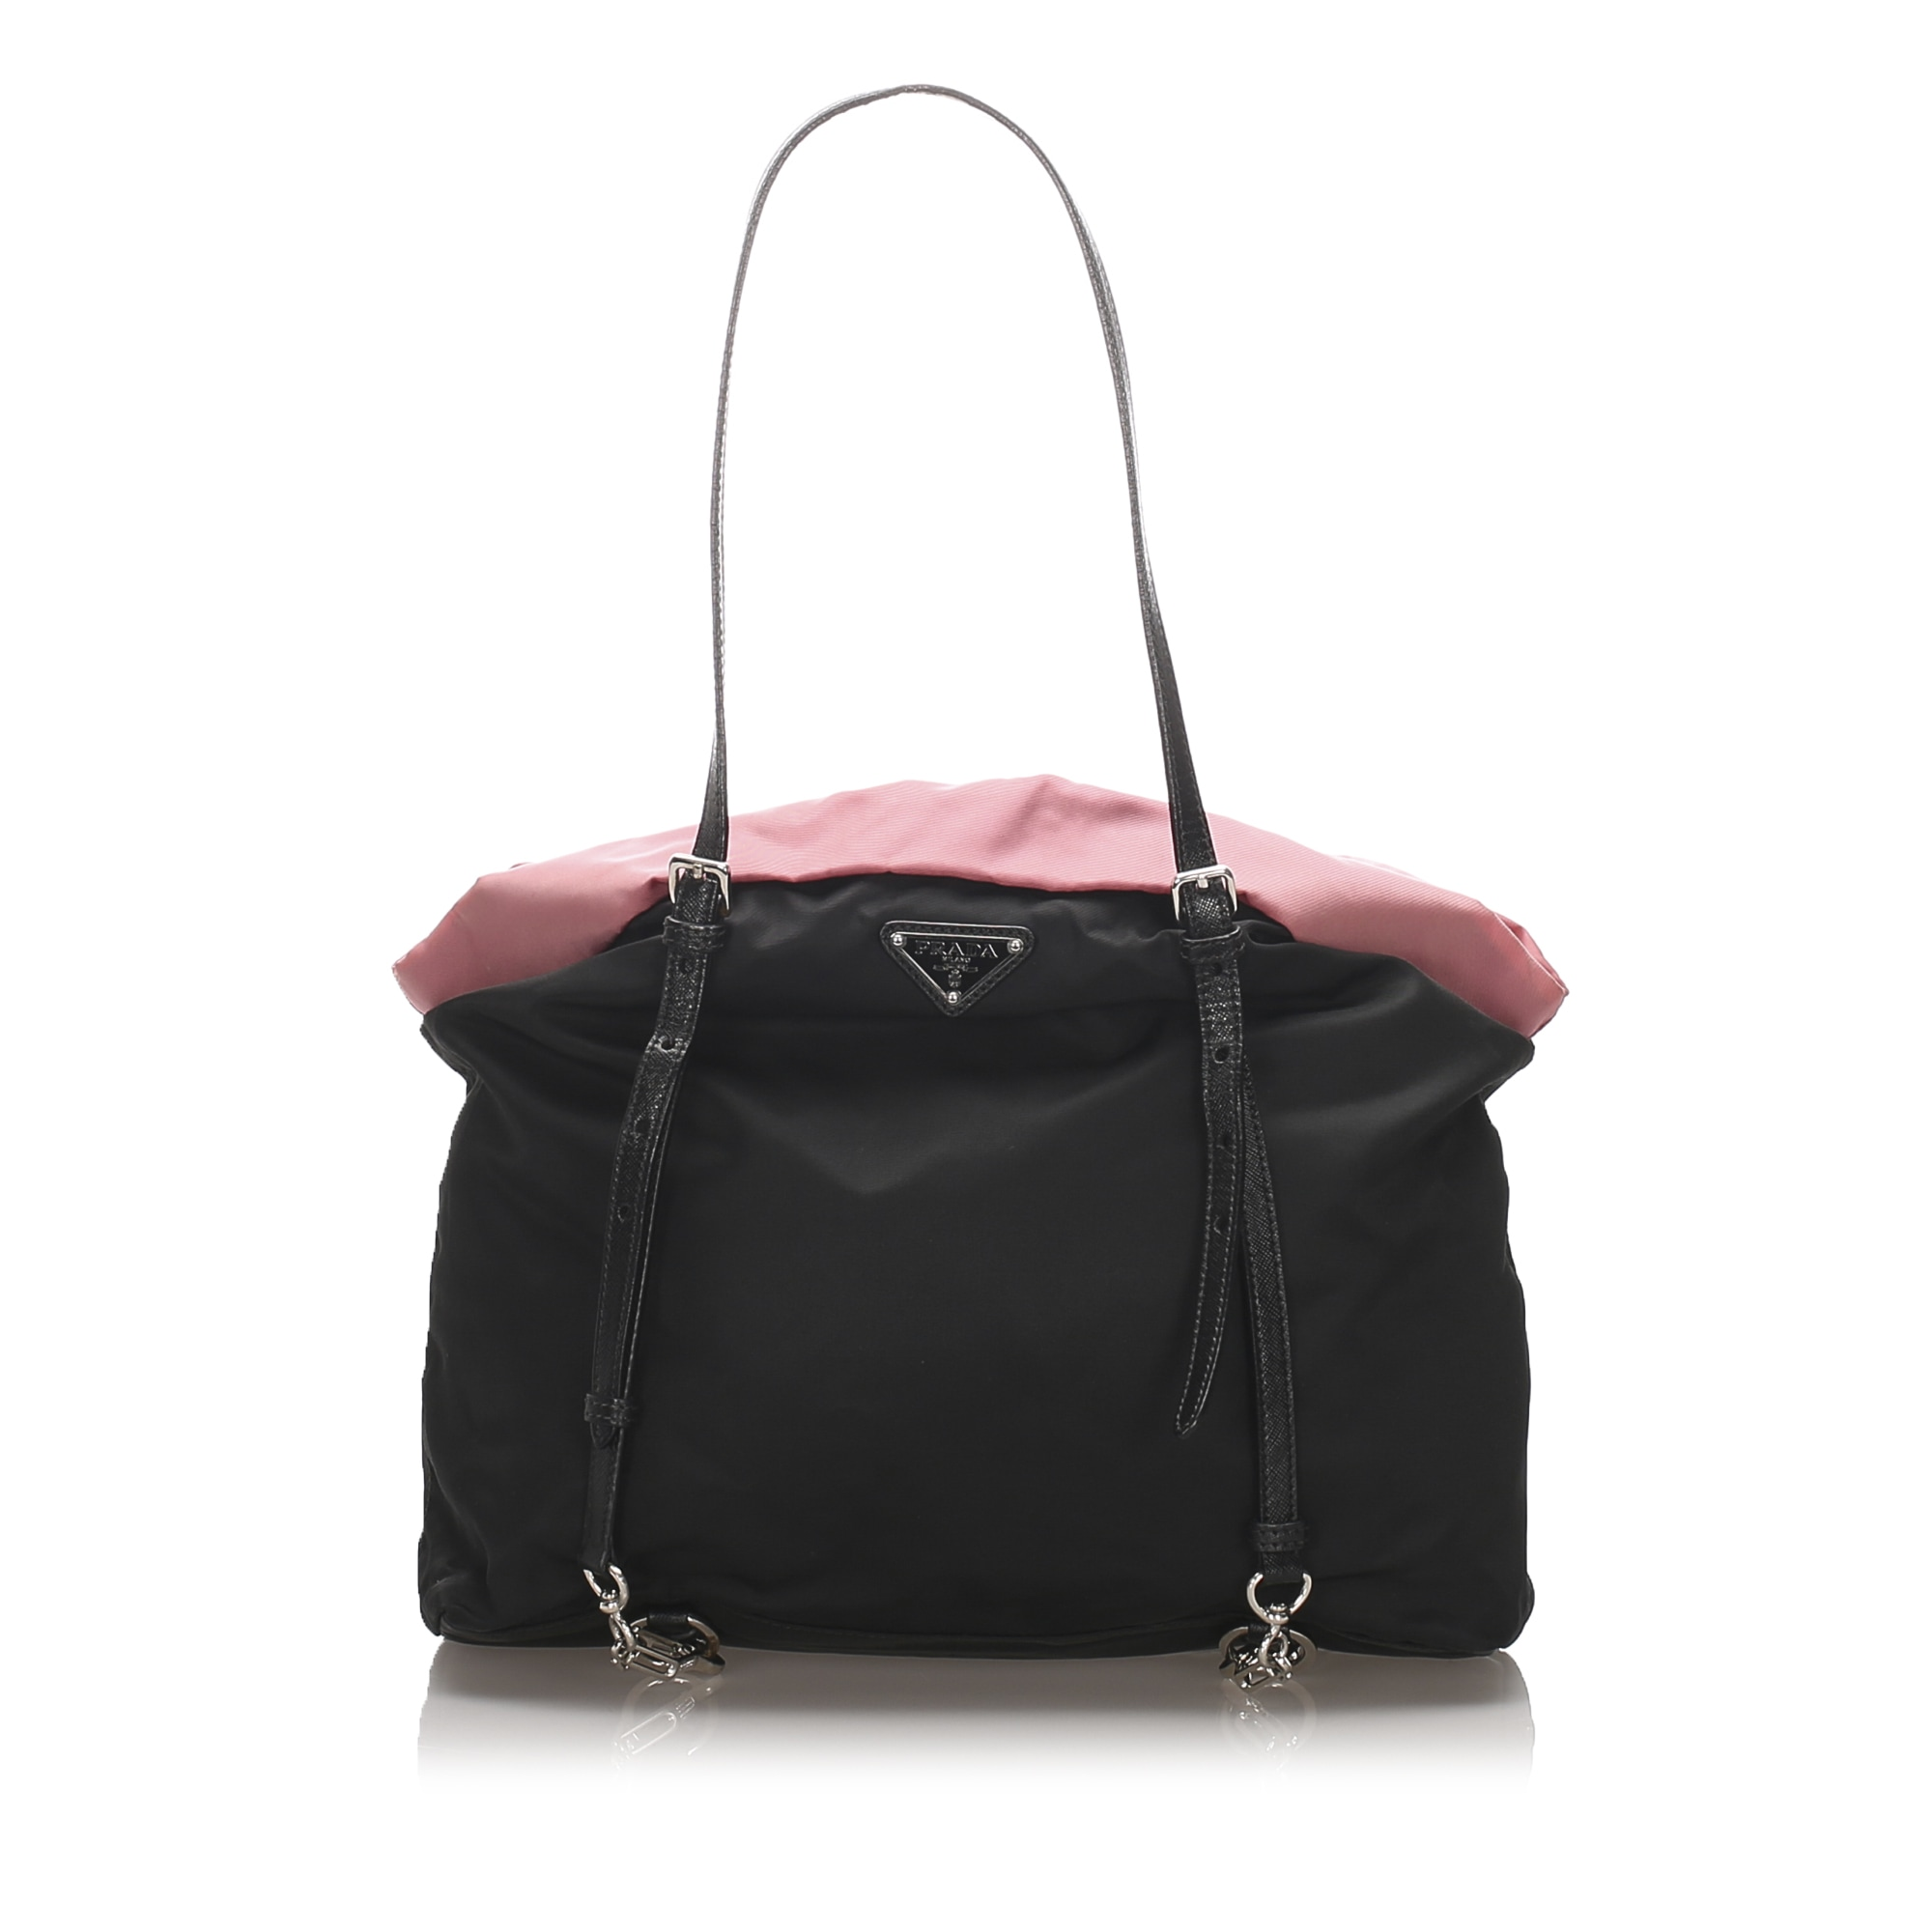 Leather Shoulder Bag PRADA Black